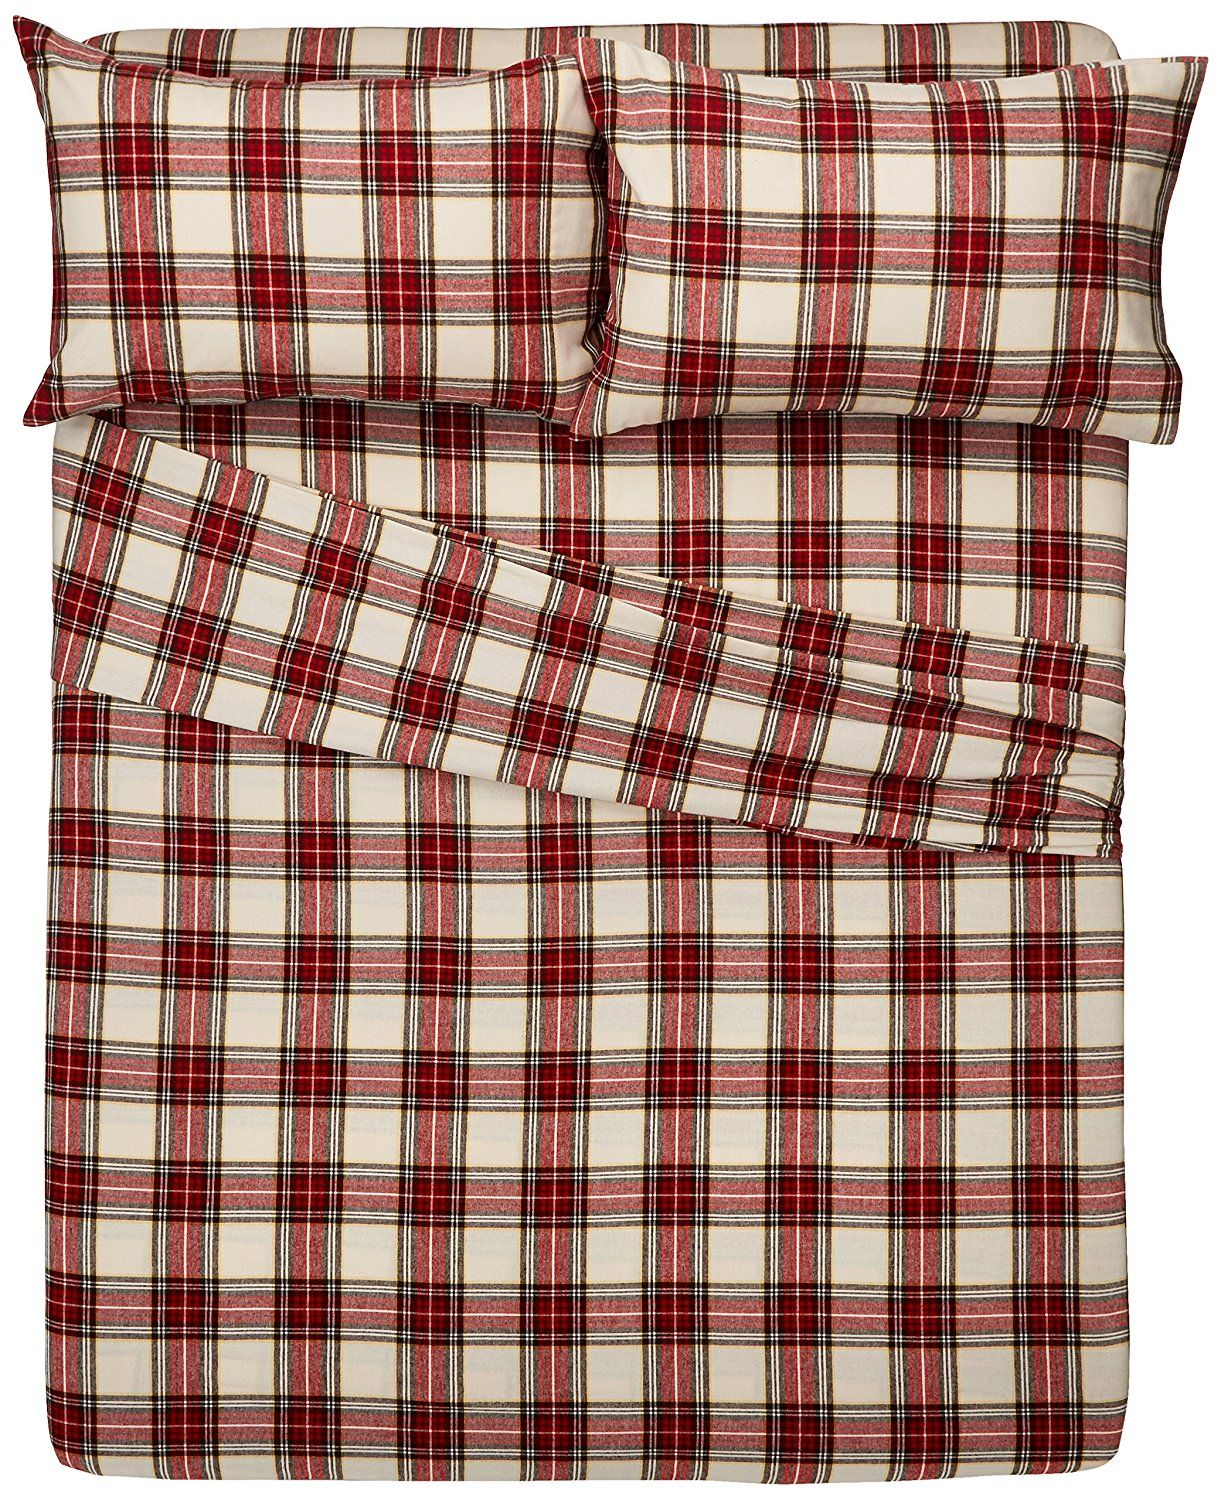 The Best Flannel Sheets Review 2017 Pinzon 160 Gram Plaid Velvet